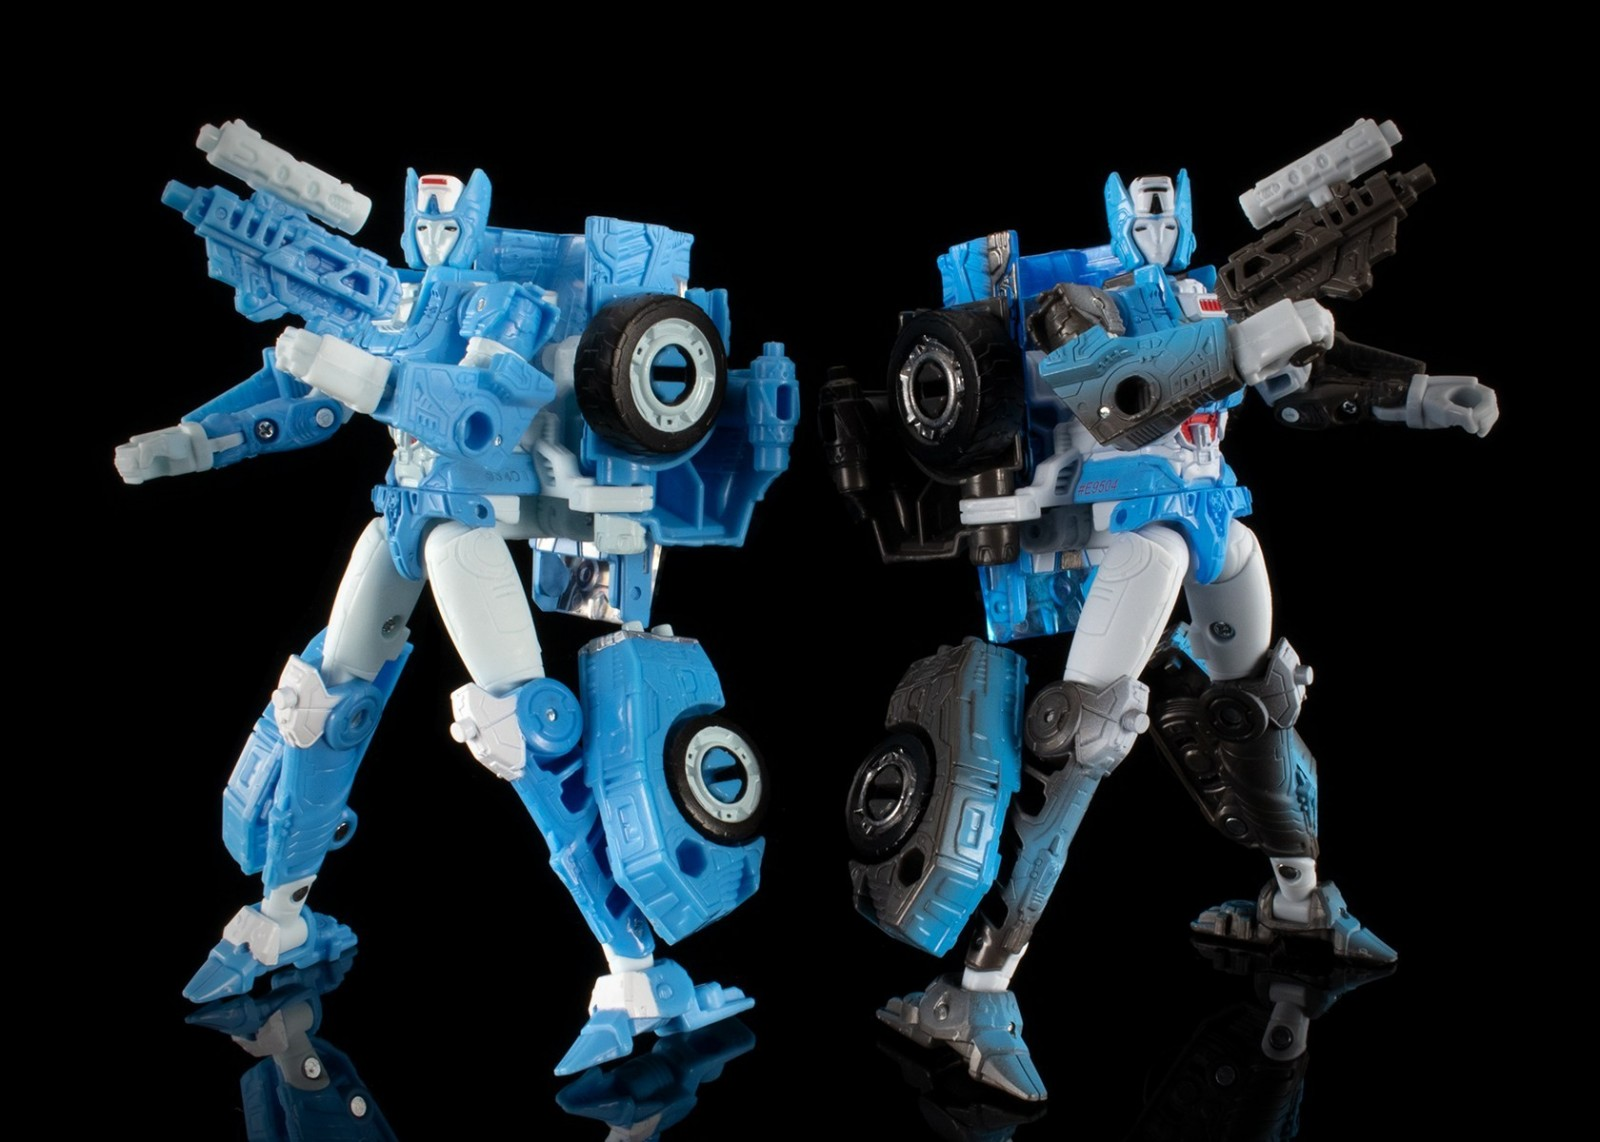 Transformers News: Reviews of all Wave 1 Netflix Transformers Series Exclusive Deluxe Toys